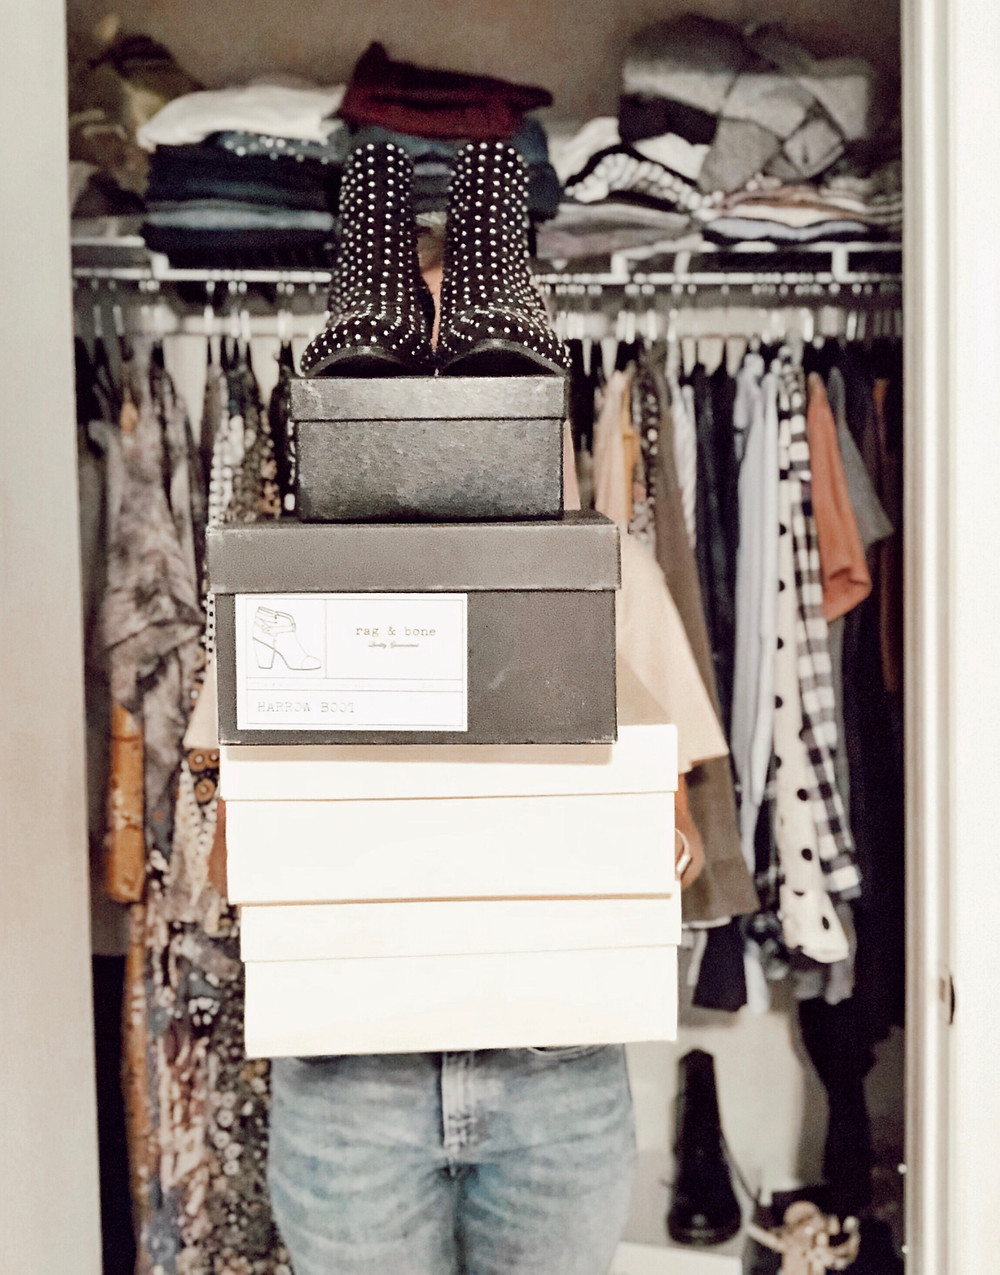 Woman stands in front of closet holding stack of shoe boxes with studded ankle booties on top.